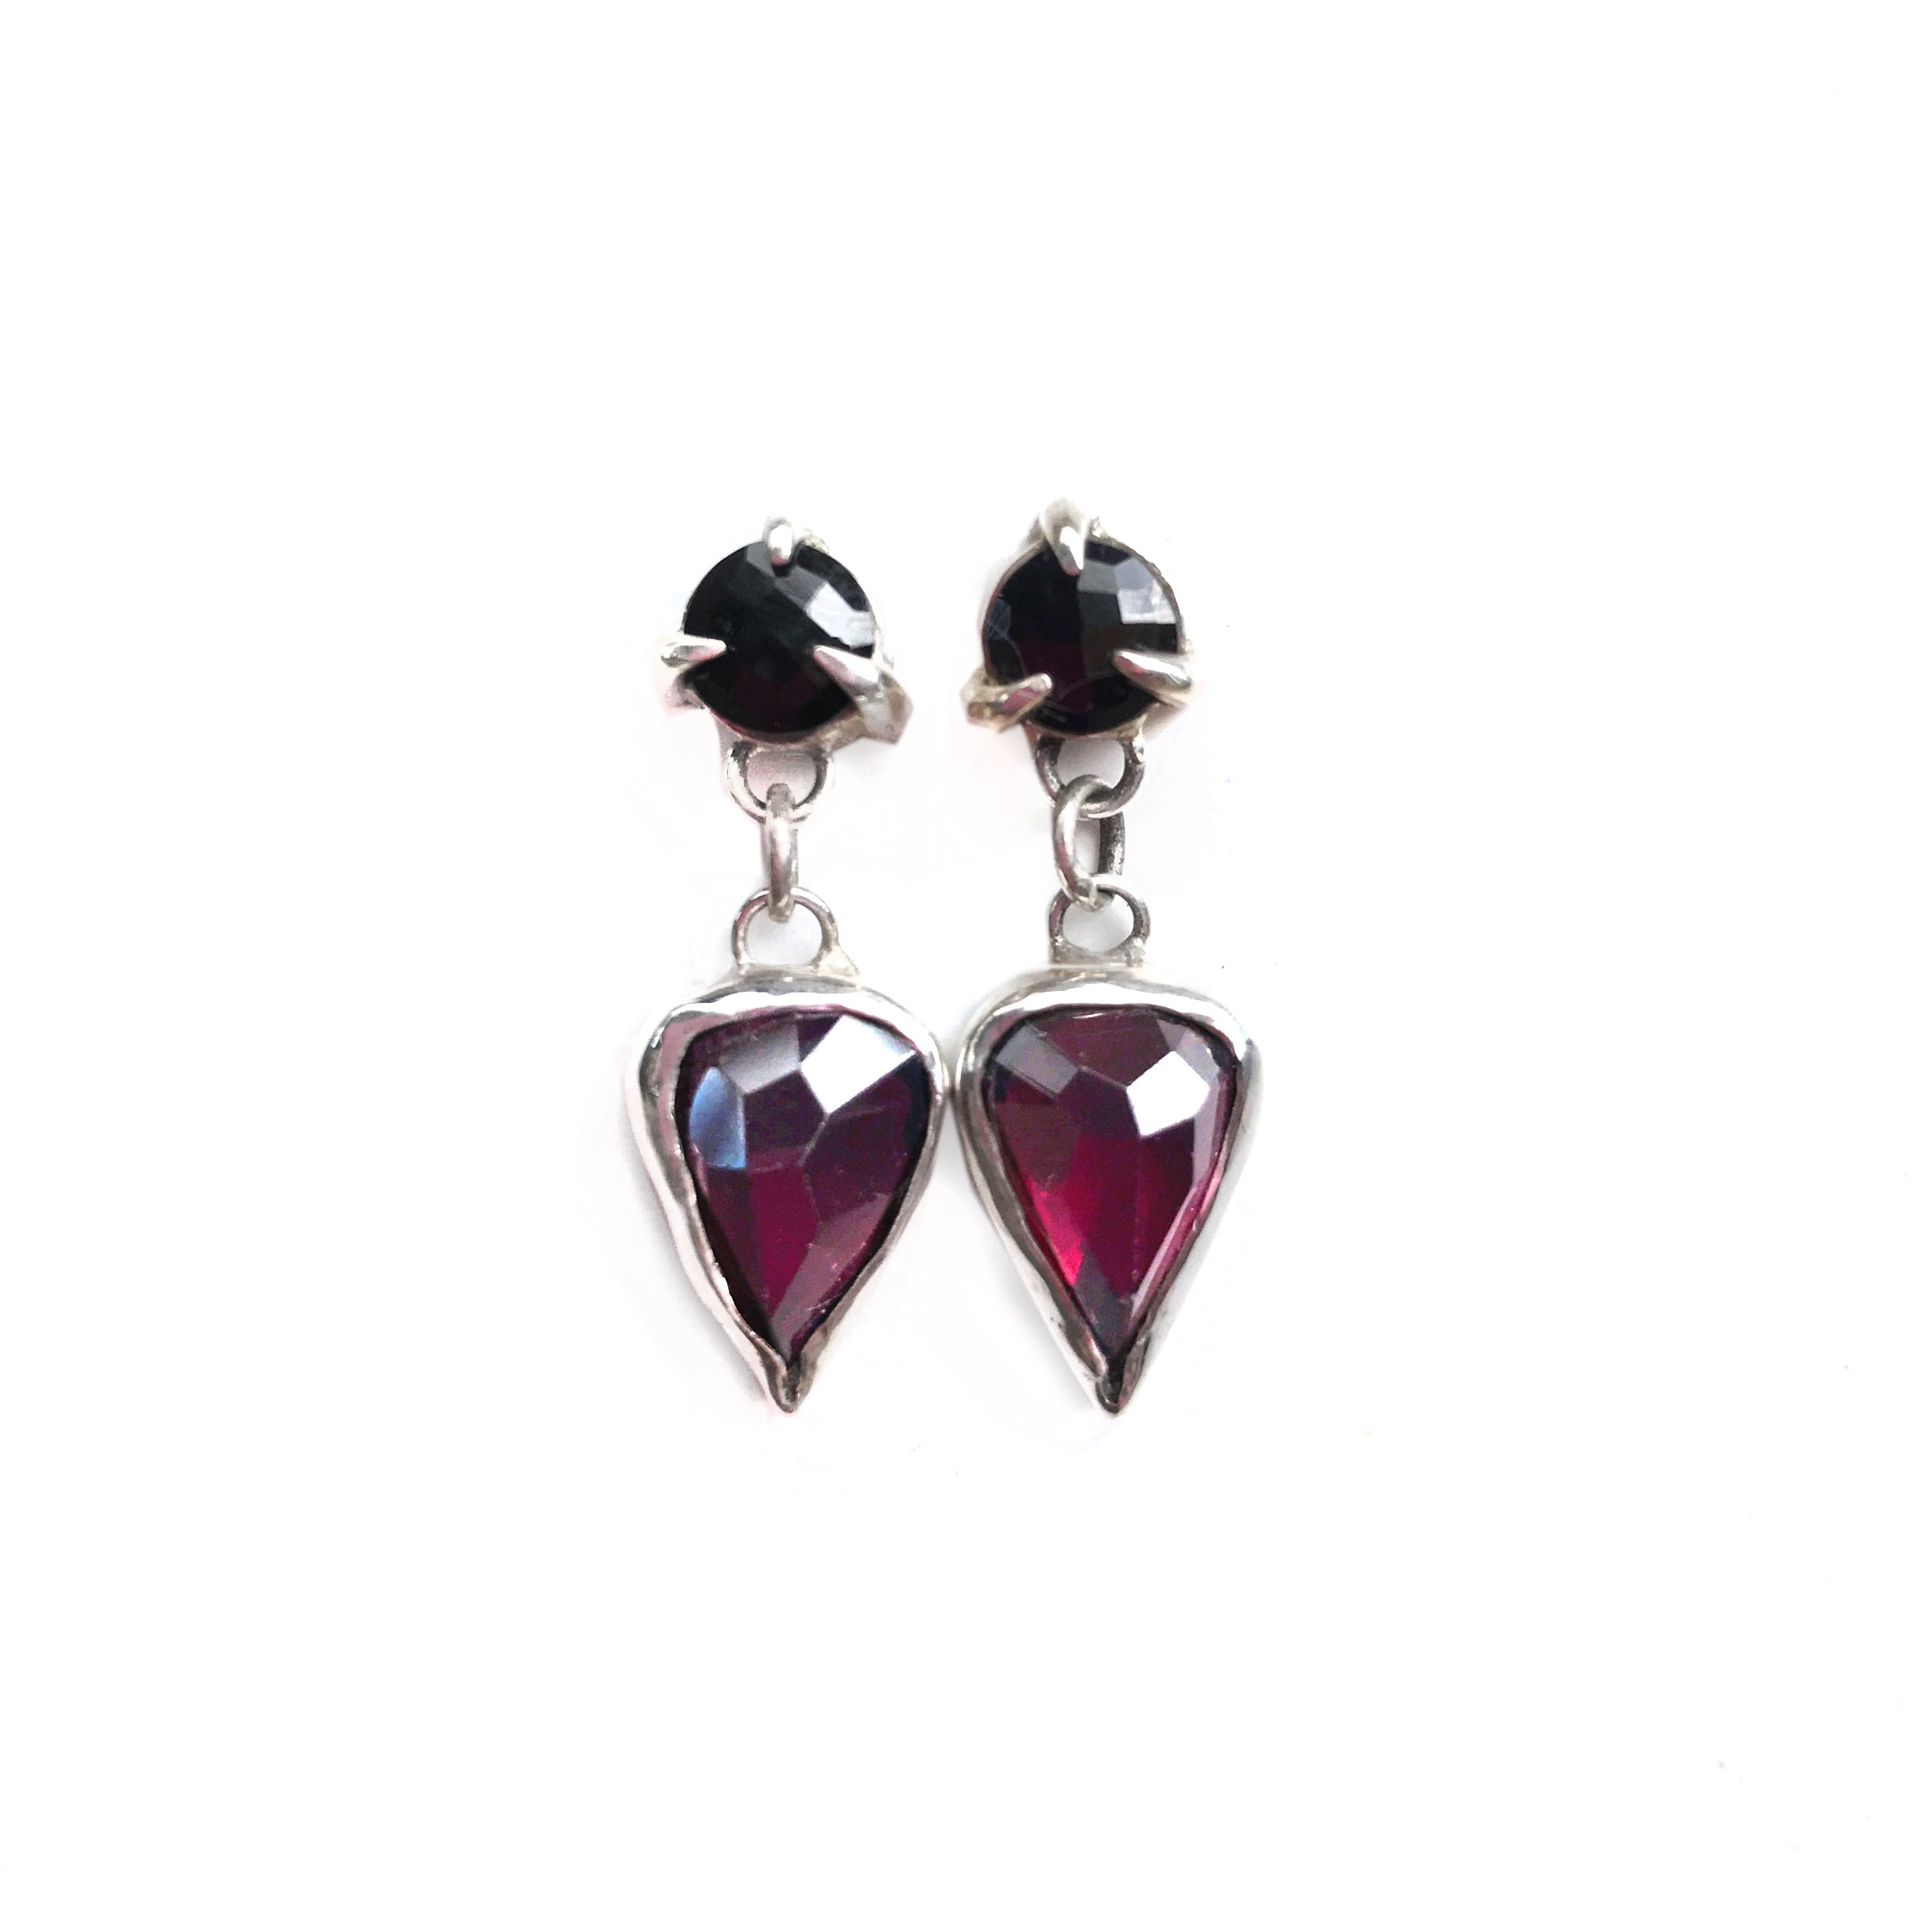 Black Spinel and Garnet Earrings